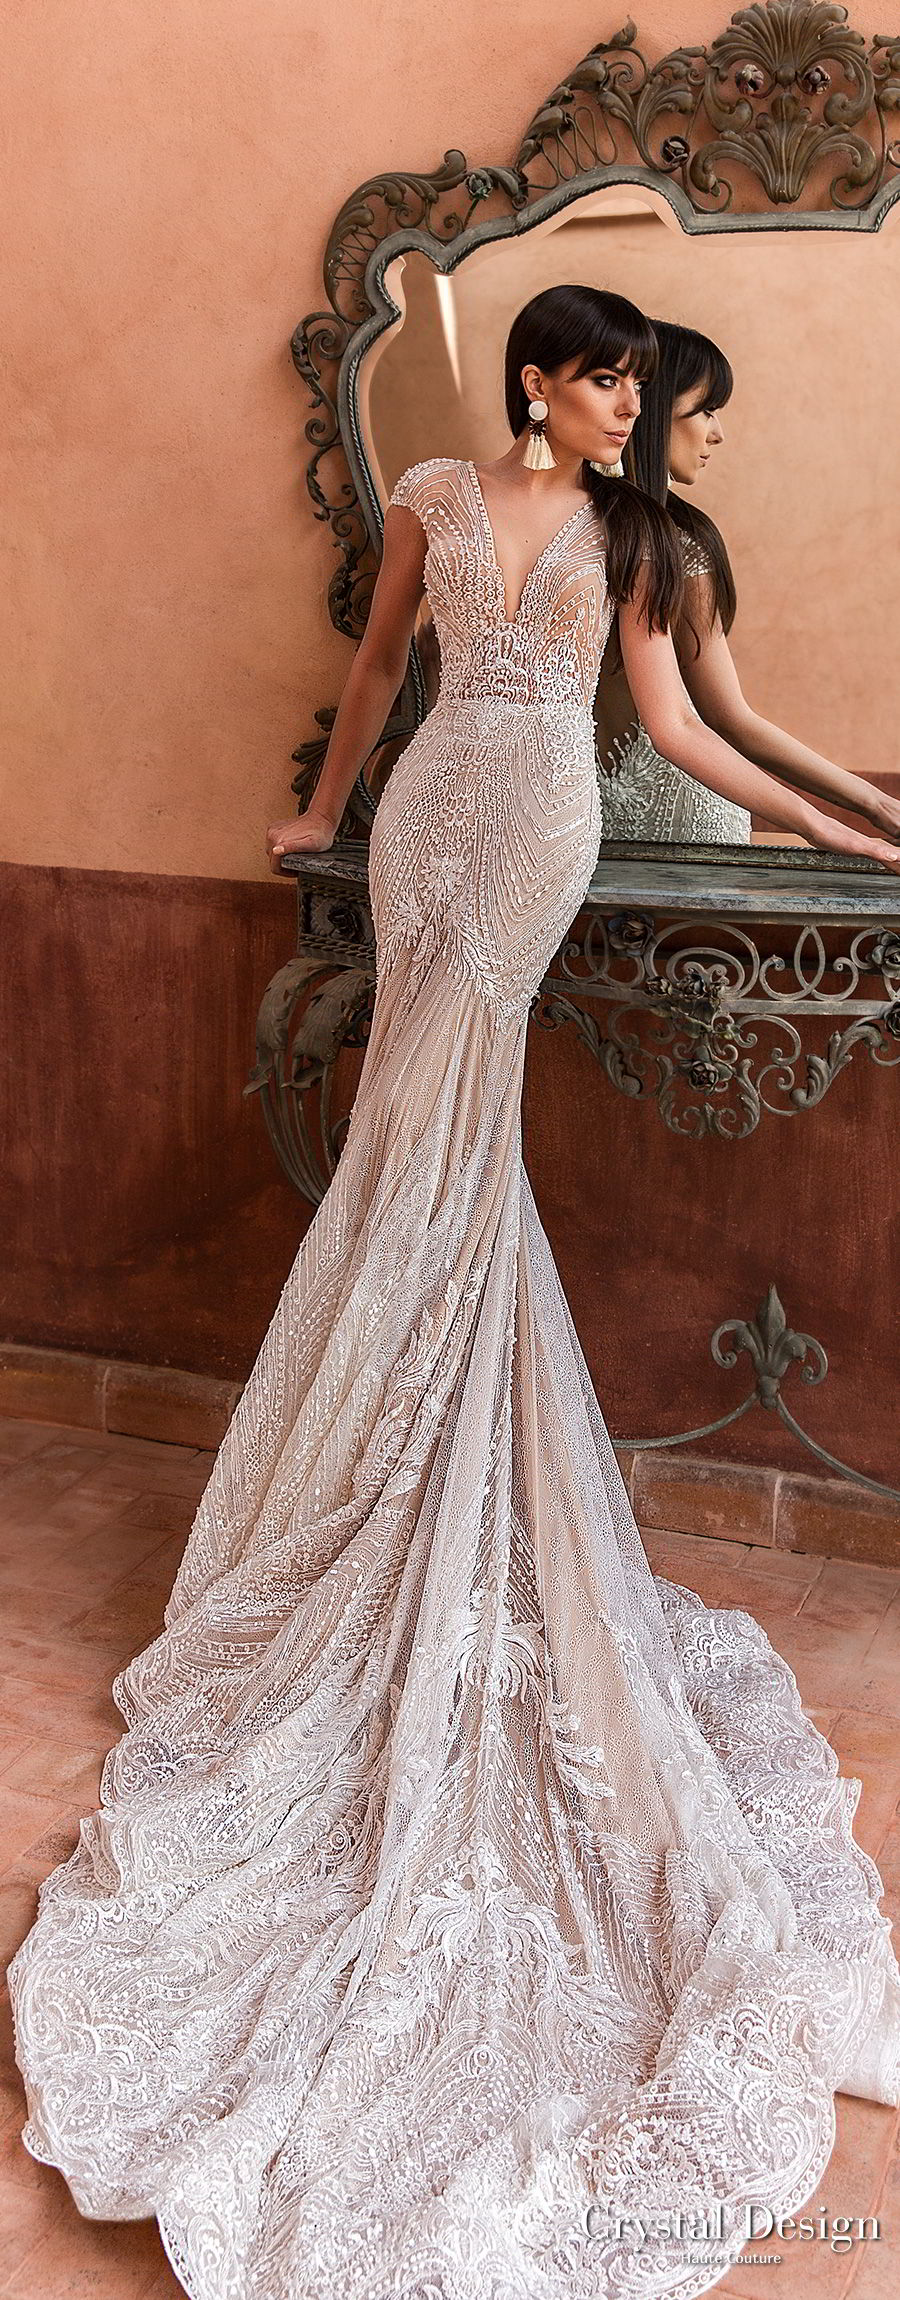 crystal design 2018 cap sleeves deep v neck full embellishment elegant trumpet wedding dress  open v back chapel train (liberty) lv